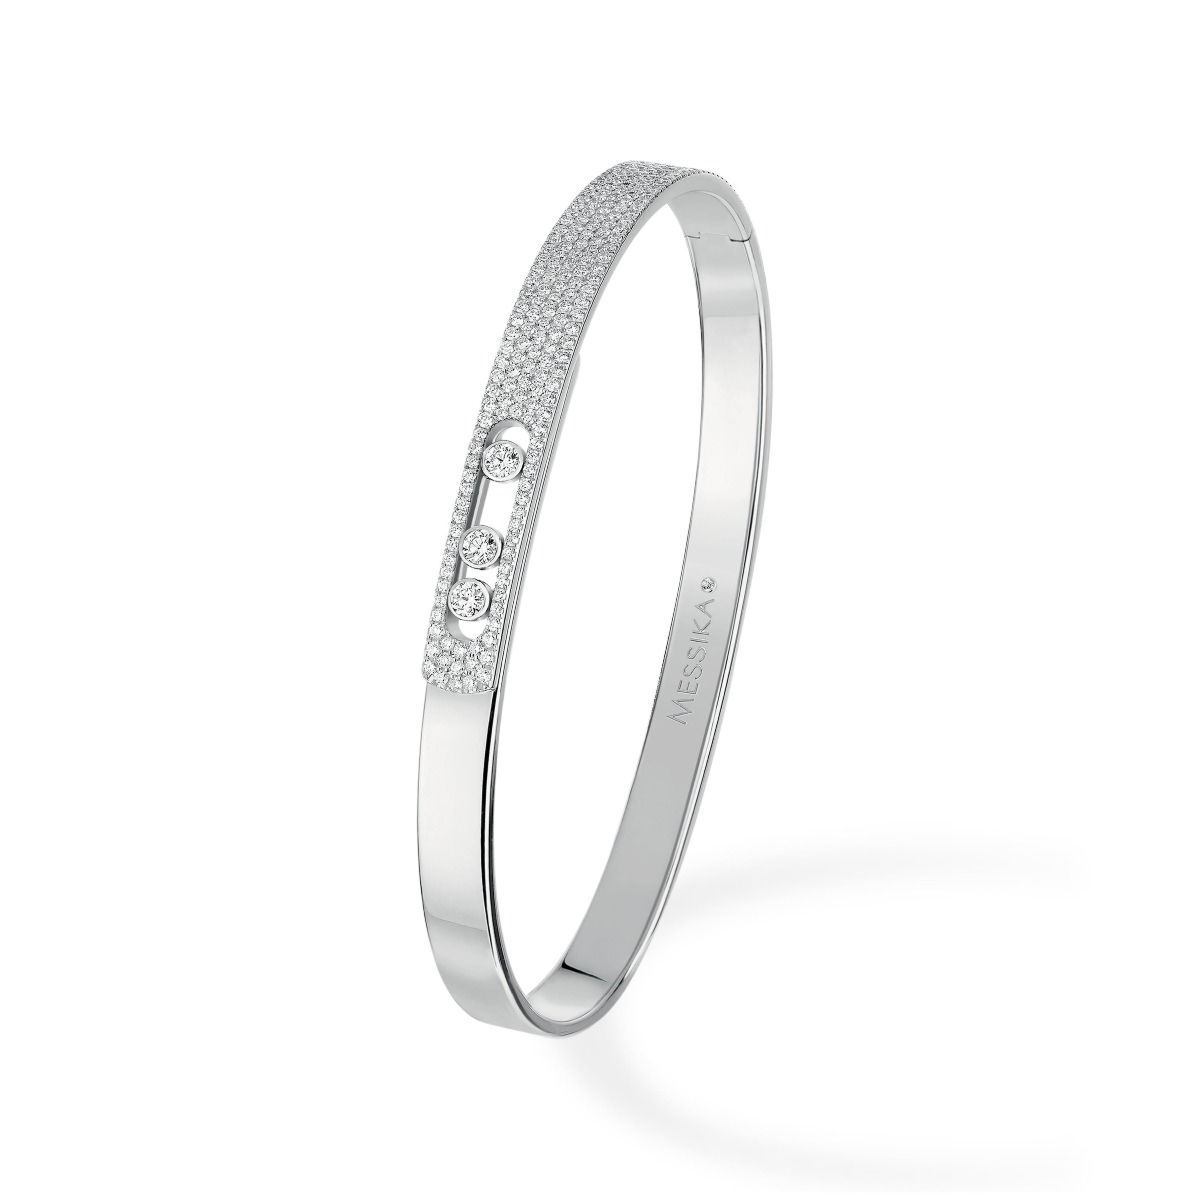 Move Noa Bangle PM Pavé BRACELET - WHITE GOLD